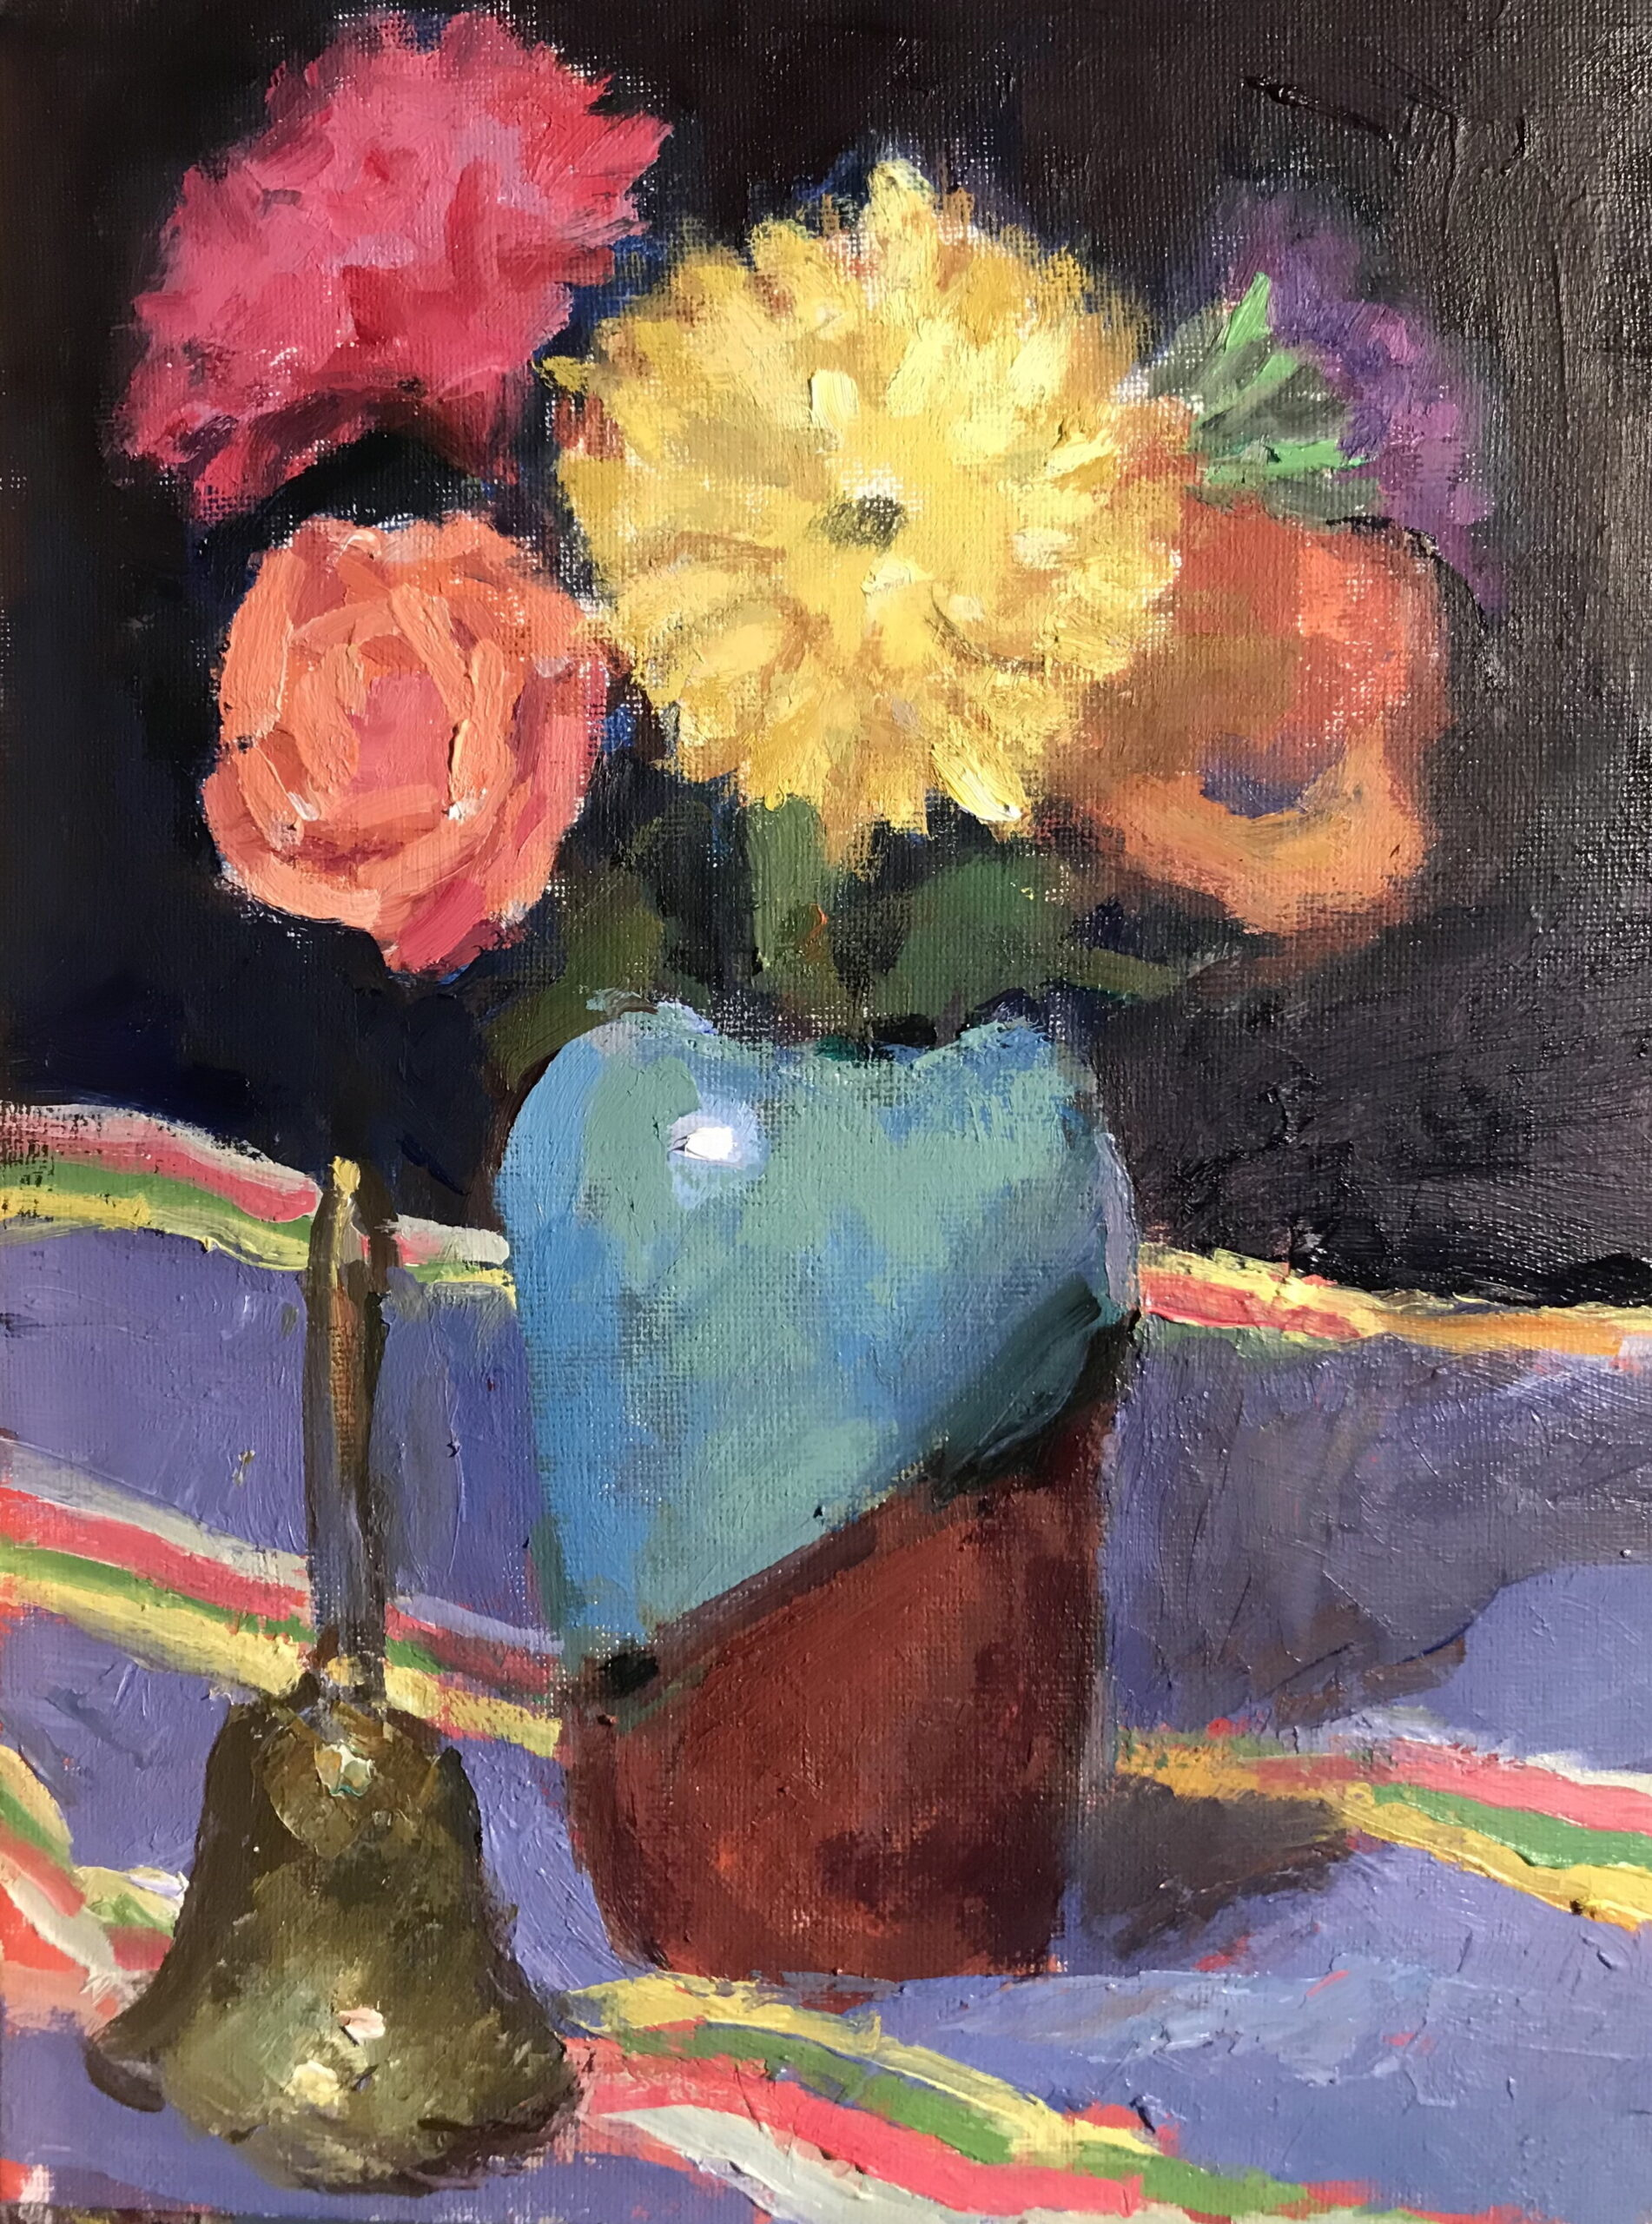 Flowers and Stripes, Oil on Panel, 12 x 9 Inches, by Susan Grisell, $200